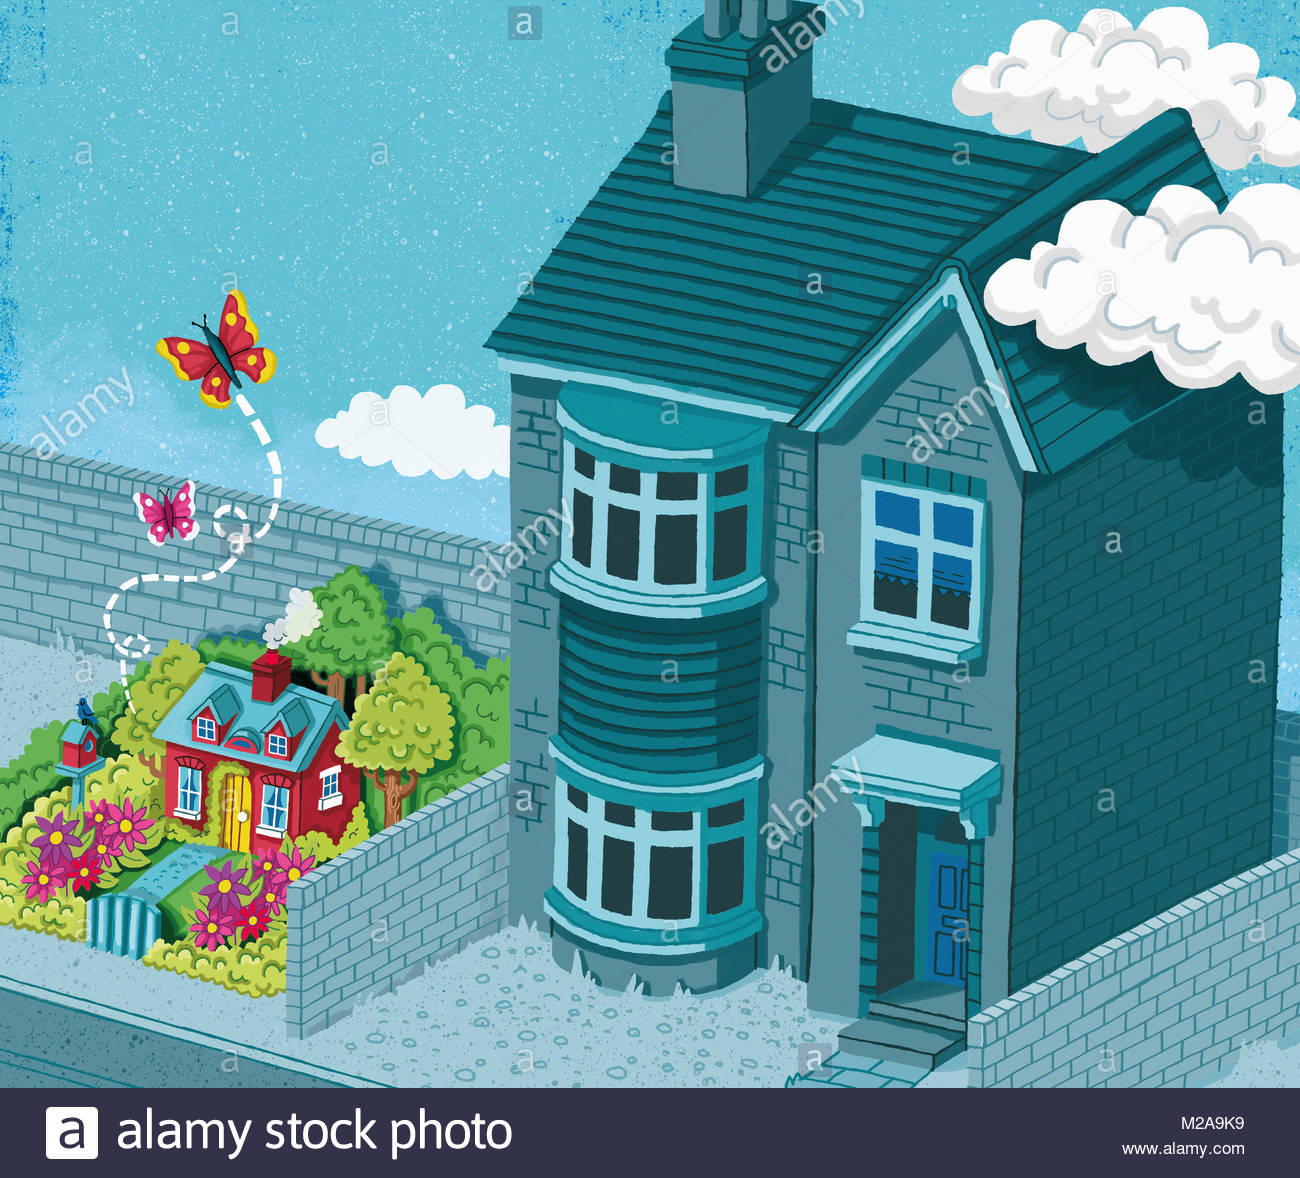 Small cottage in colourful garden next to large gray house - Stock Image